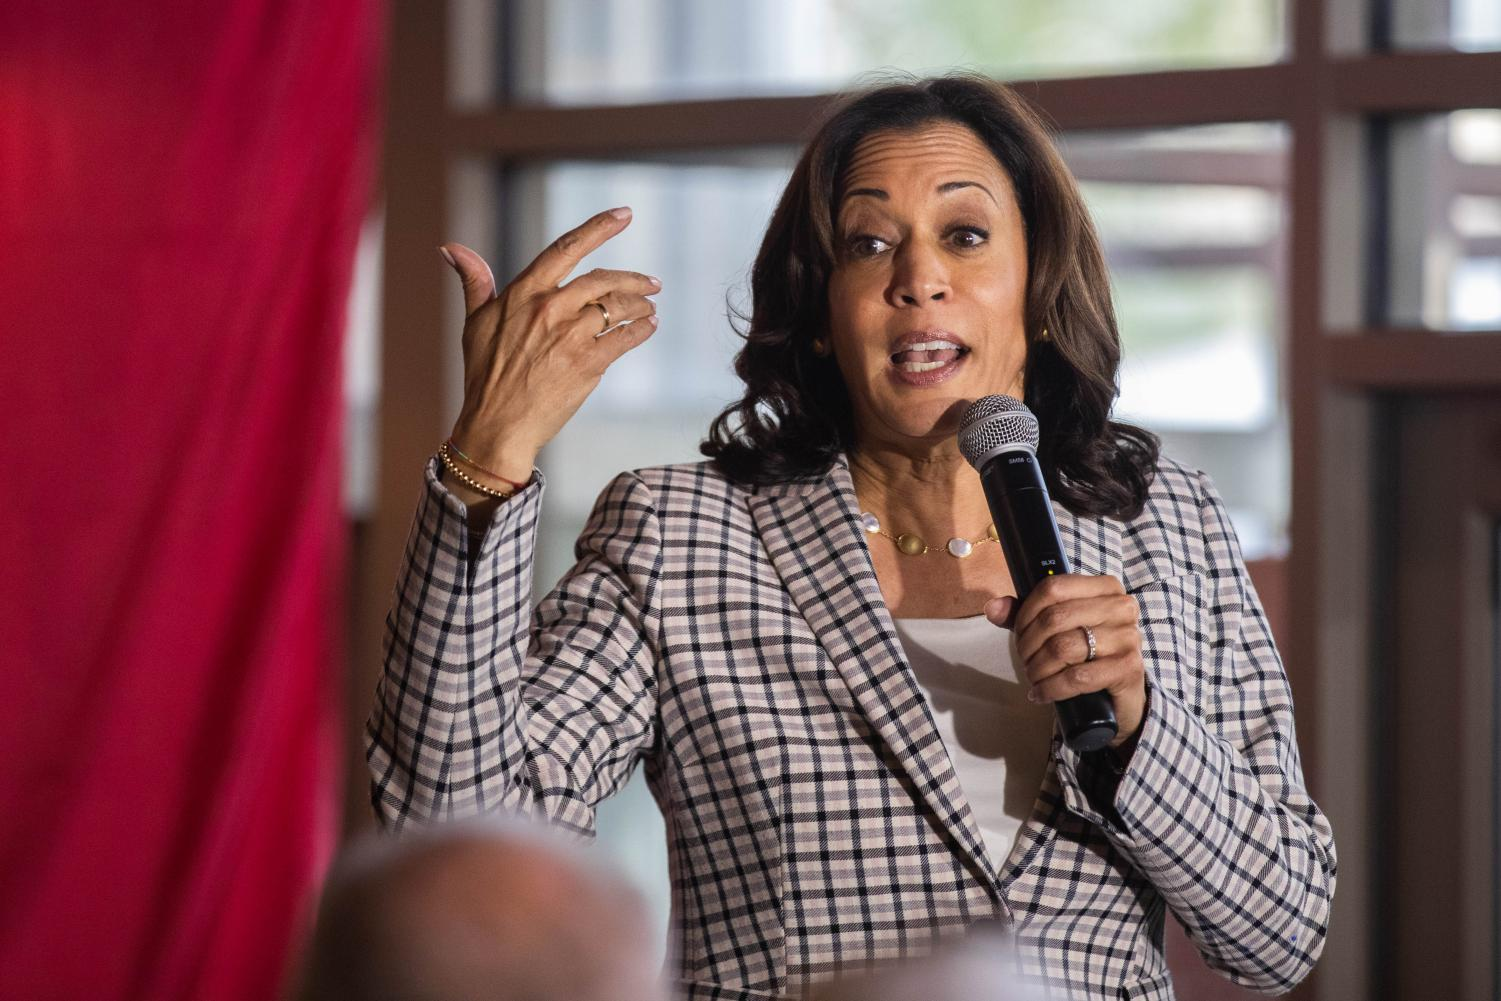 Senator Kamala Harris, D-CA, addresses supporters at Backpocket Brewery on Thursday, September 19, 2019.